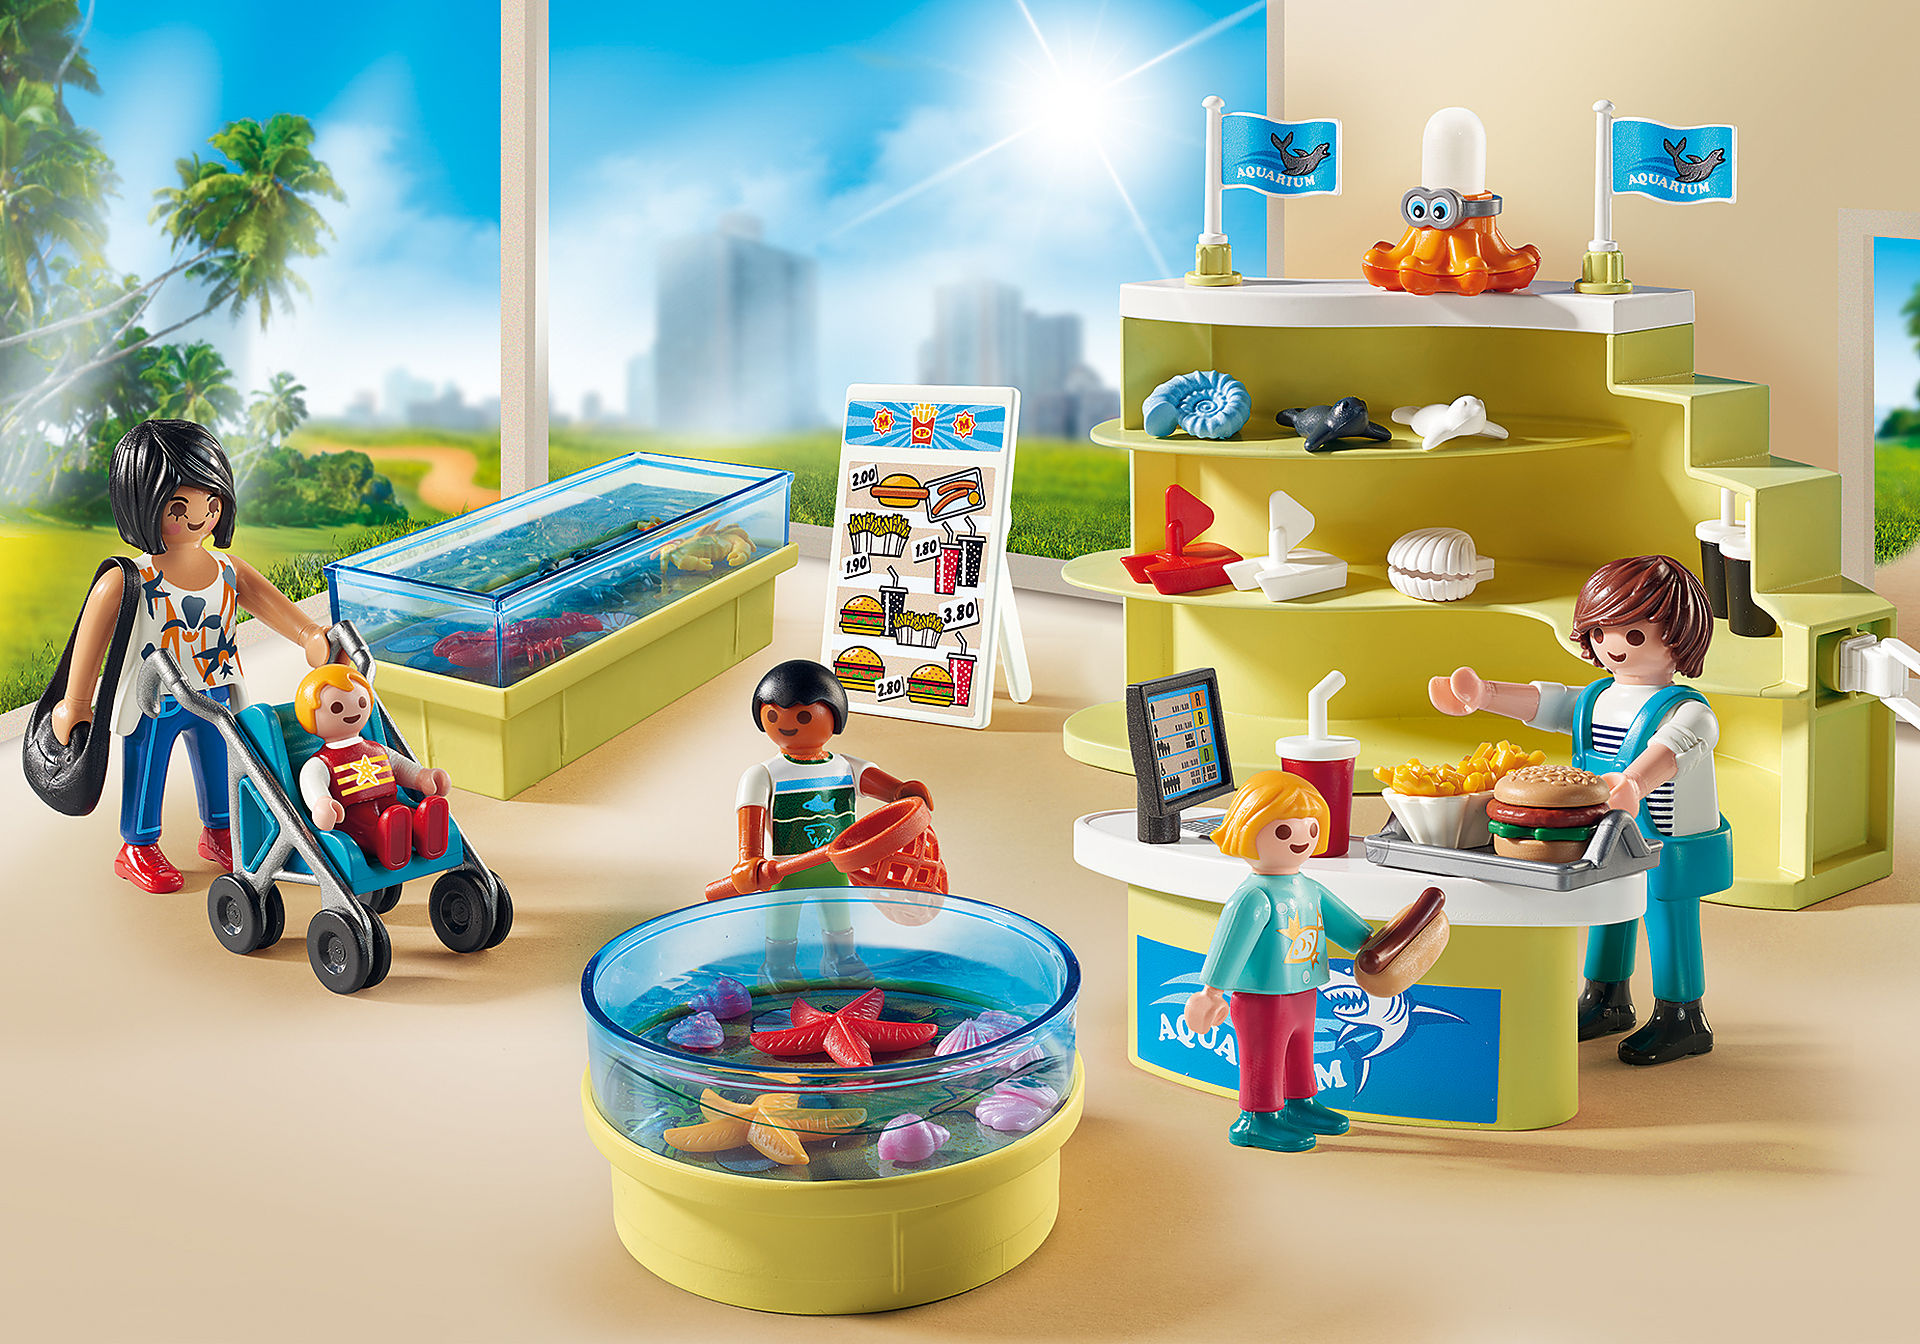 http://media.playmobil.com/i/playmobil/9061_product_detail/Κατάστημα Ενυδρείου